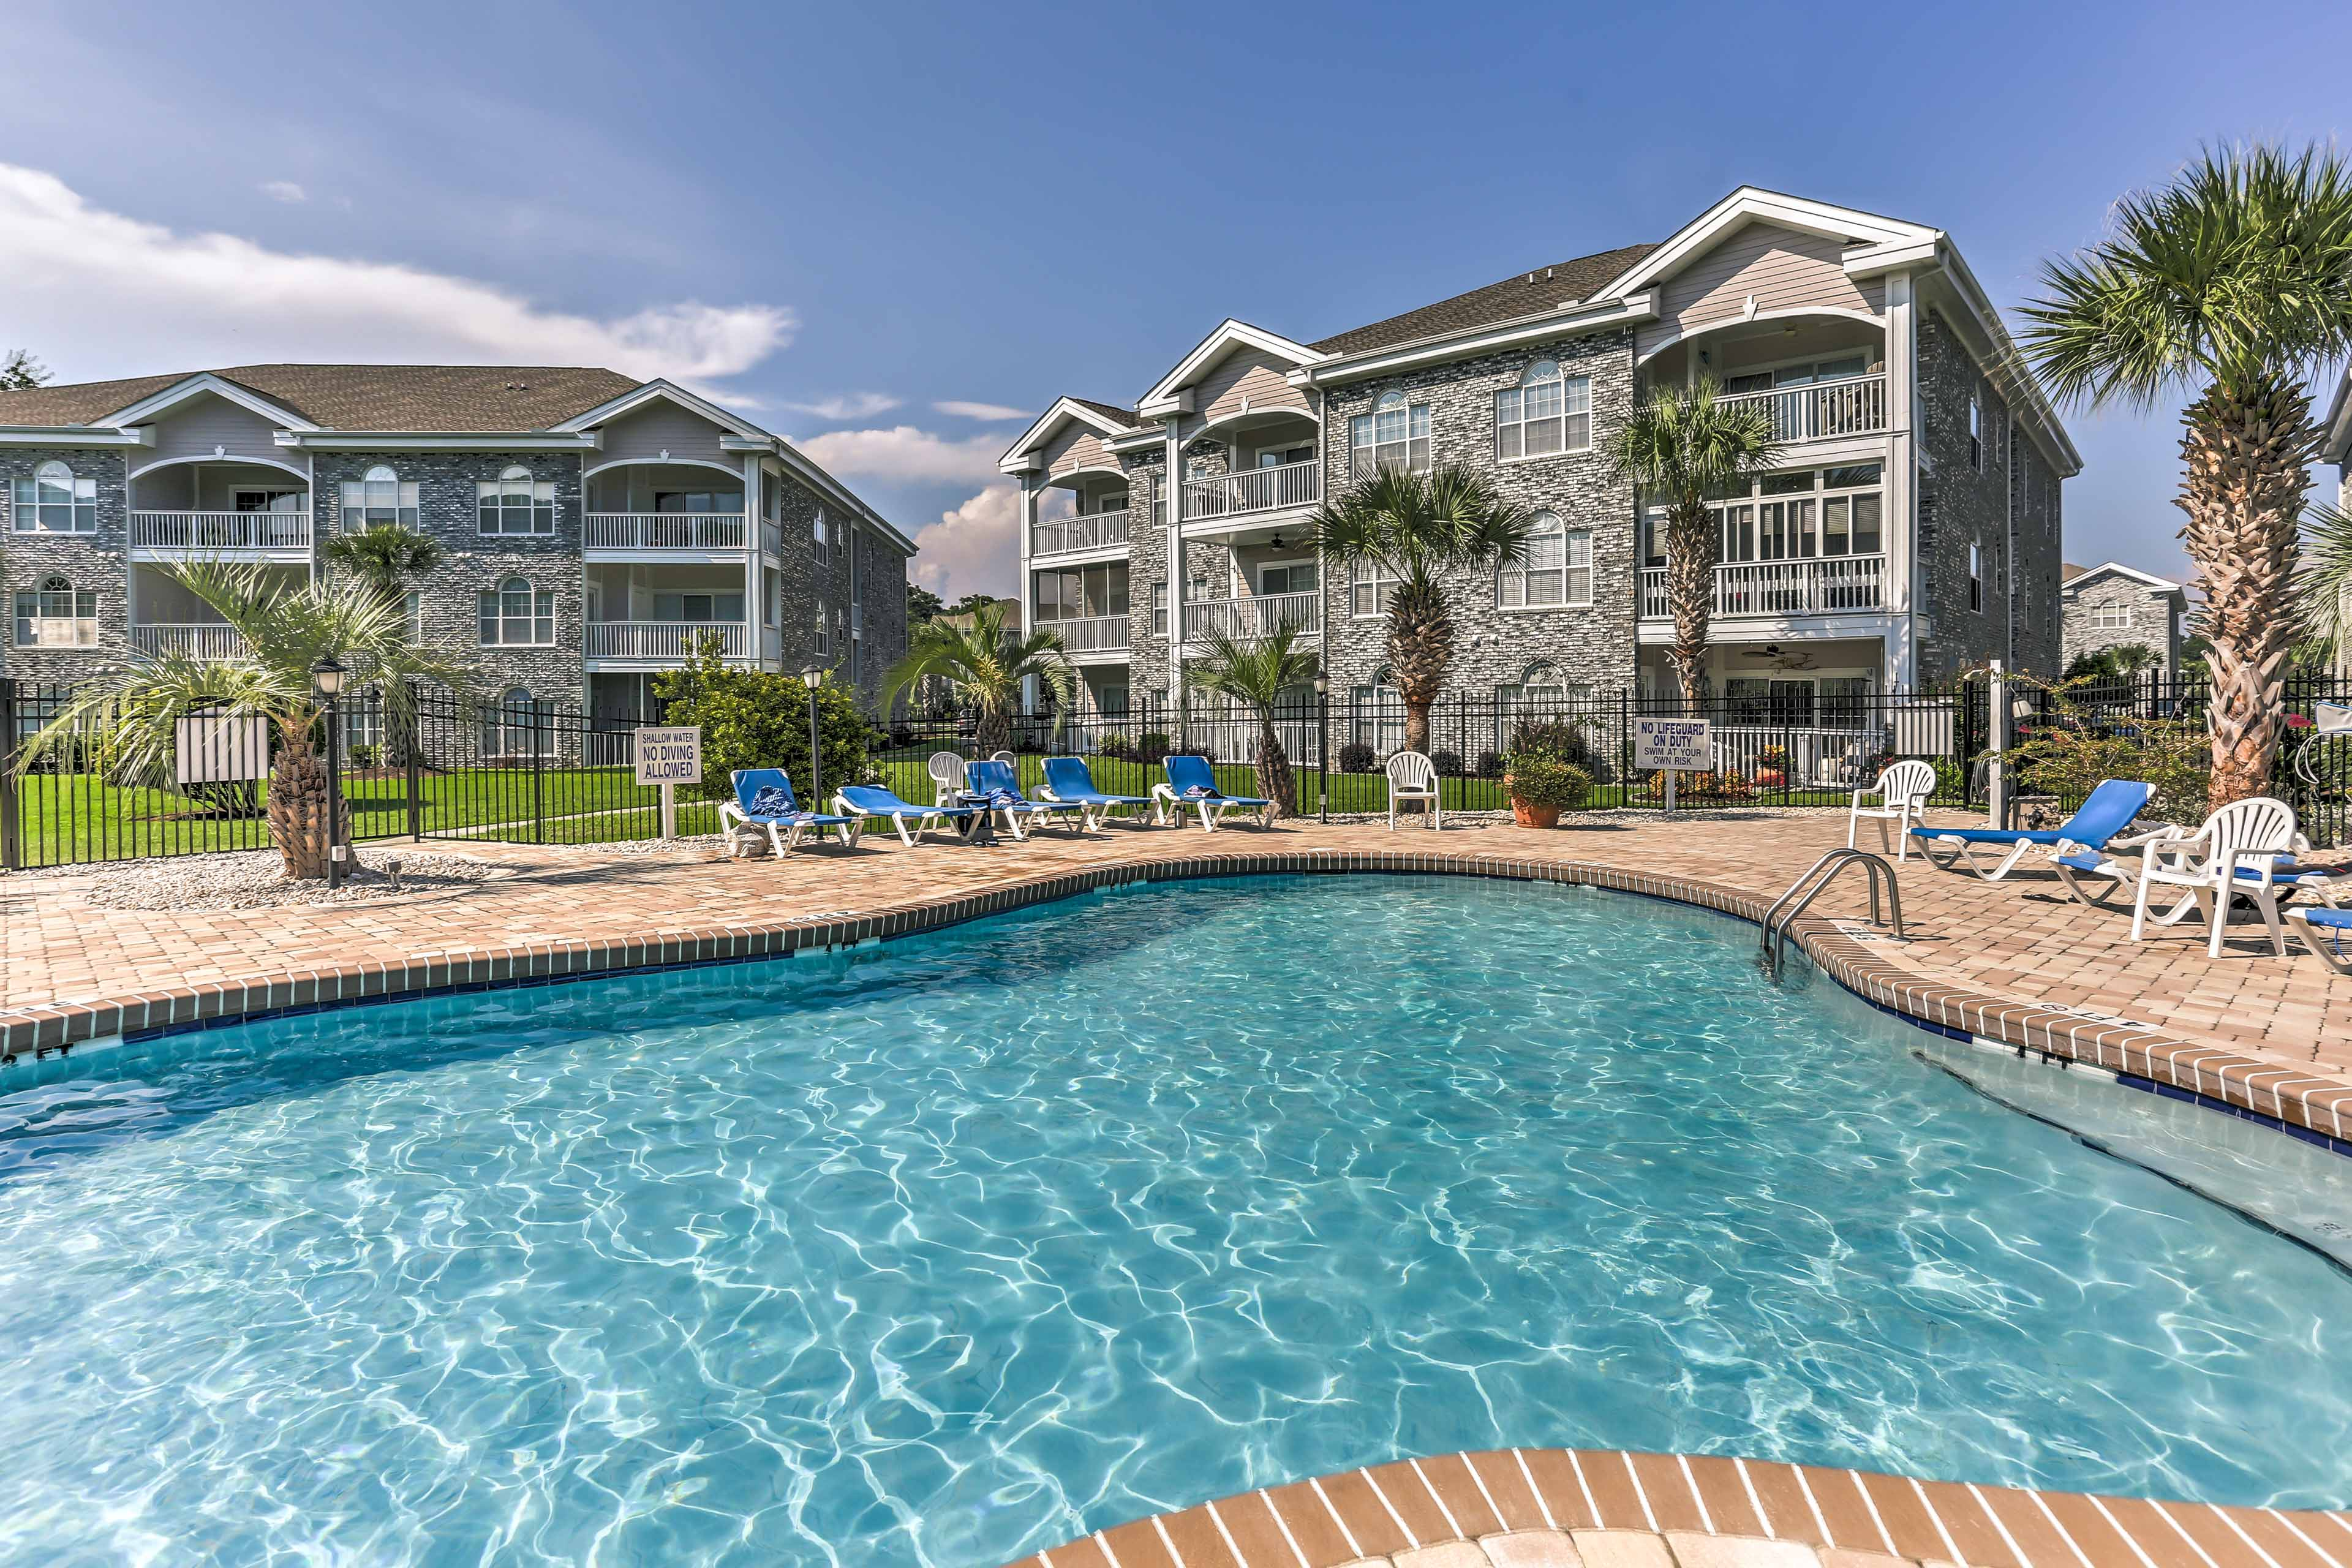 Myrtle Beach Vacation Rental | 2BR | 2BA | 1,250 Sq Ft | Step-Free Access